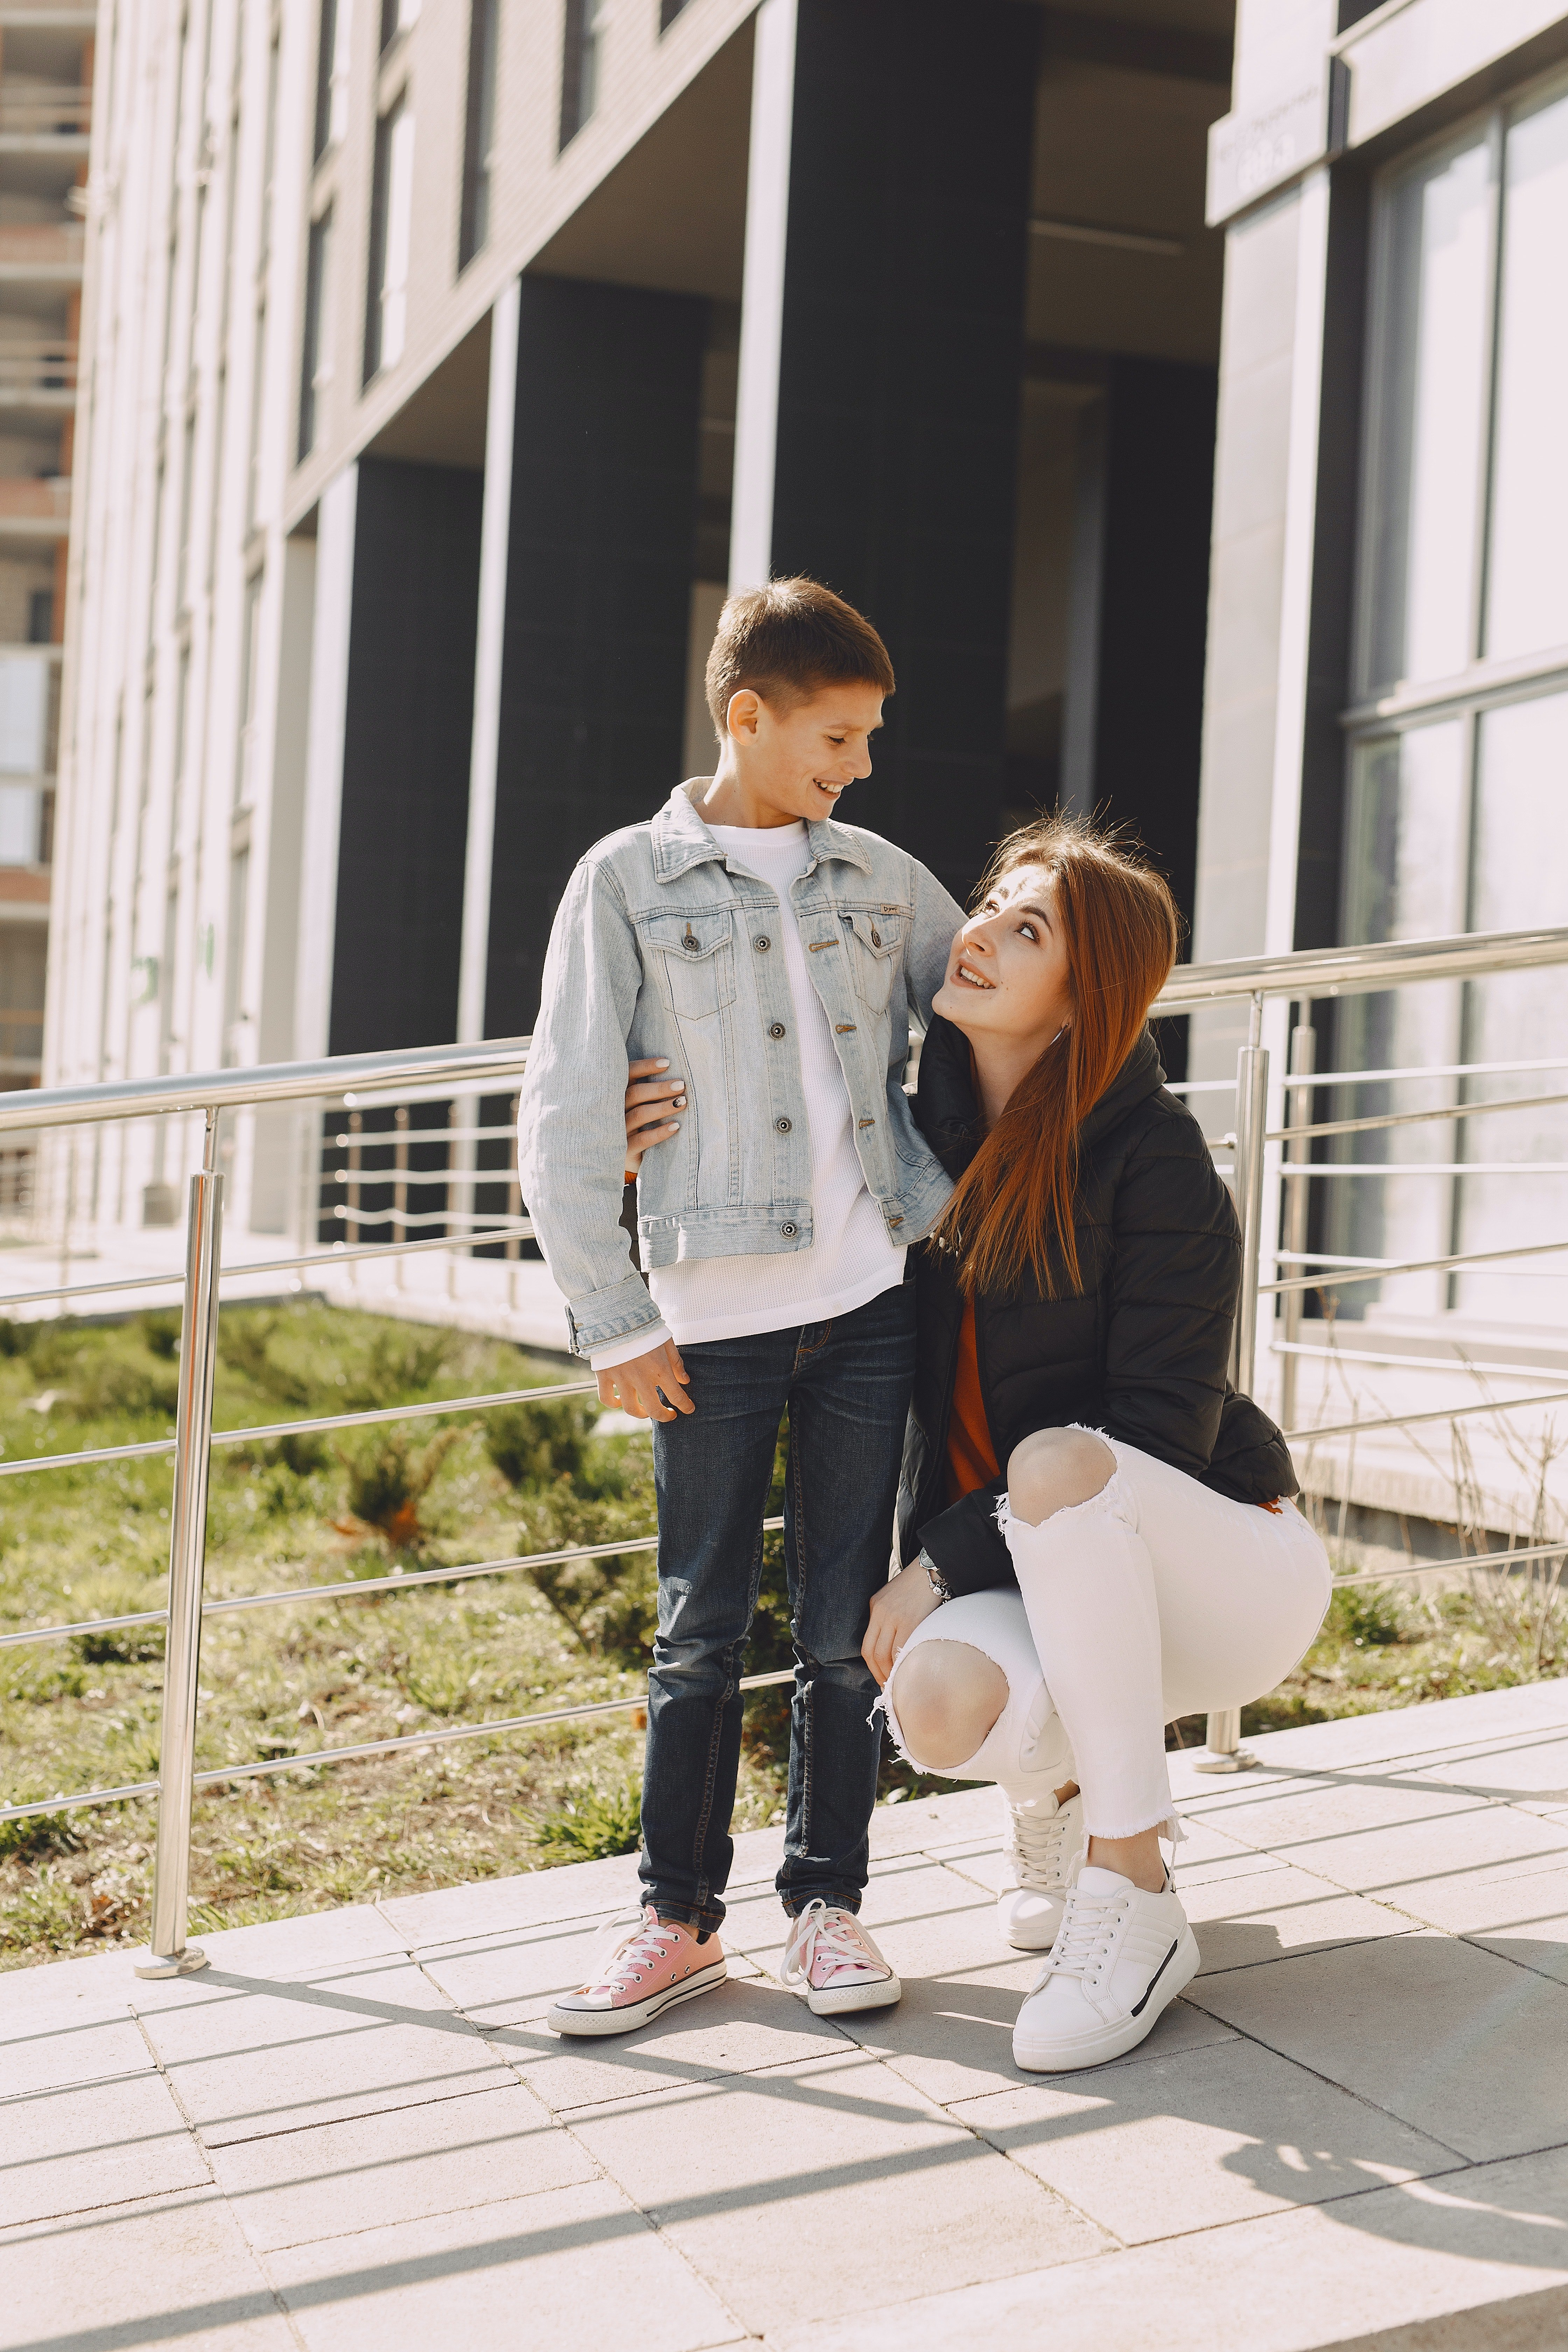 Happy mother and son hugging on street   Photo: Pexels